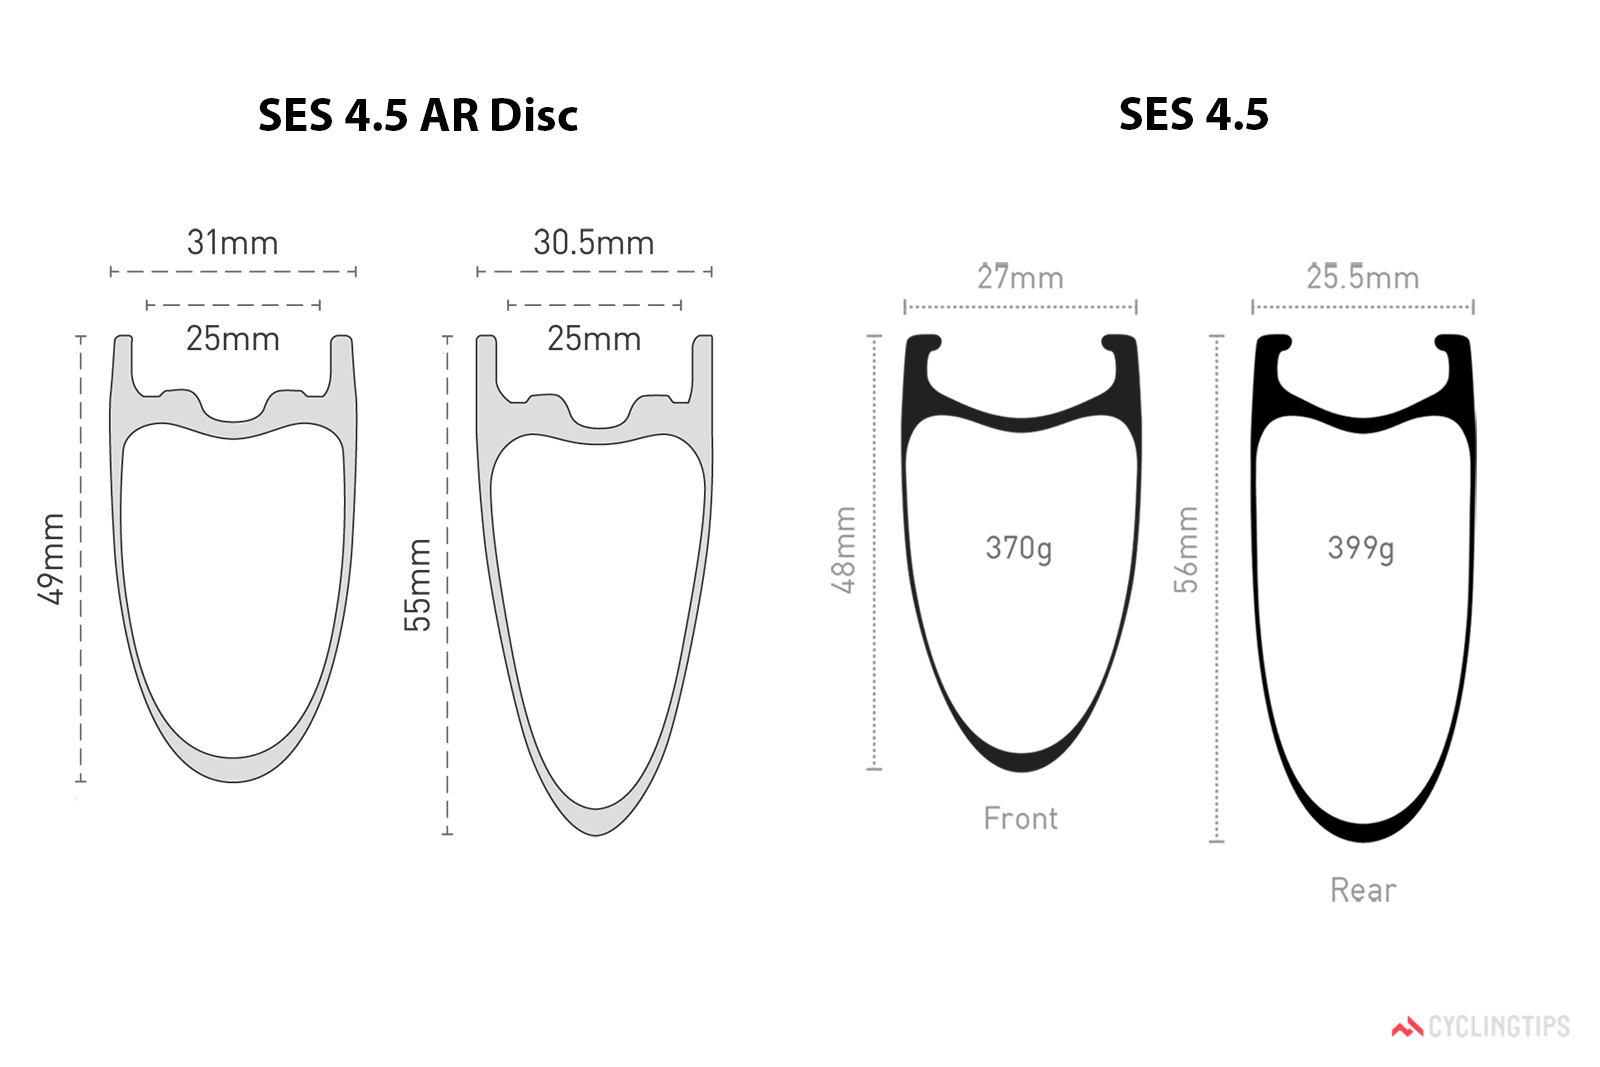 The SES 4.5 AR Disc rims are each 29-39g lighter than the SES 4.5 ones, despite being 4-5mm wider in both internal and external width. Photo: Enve Composites.